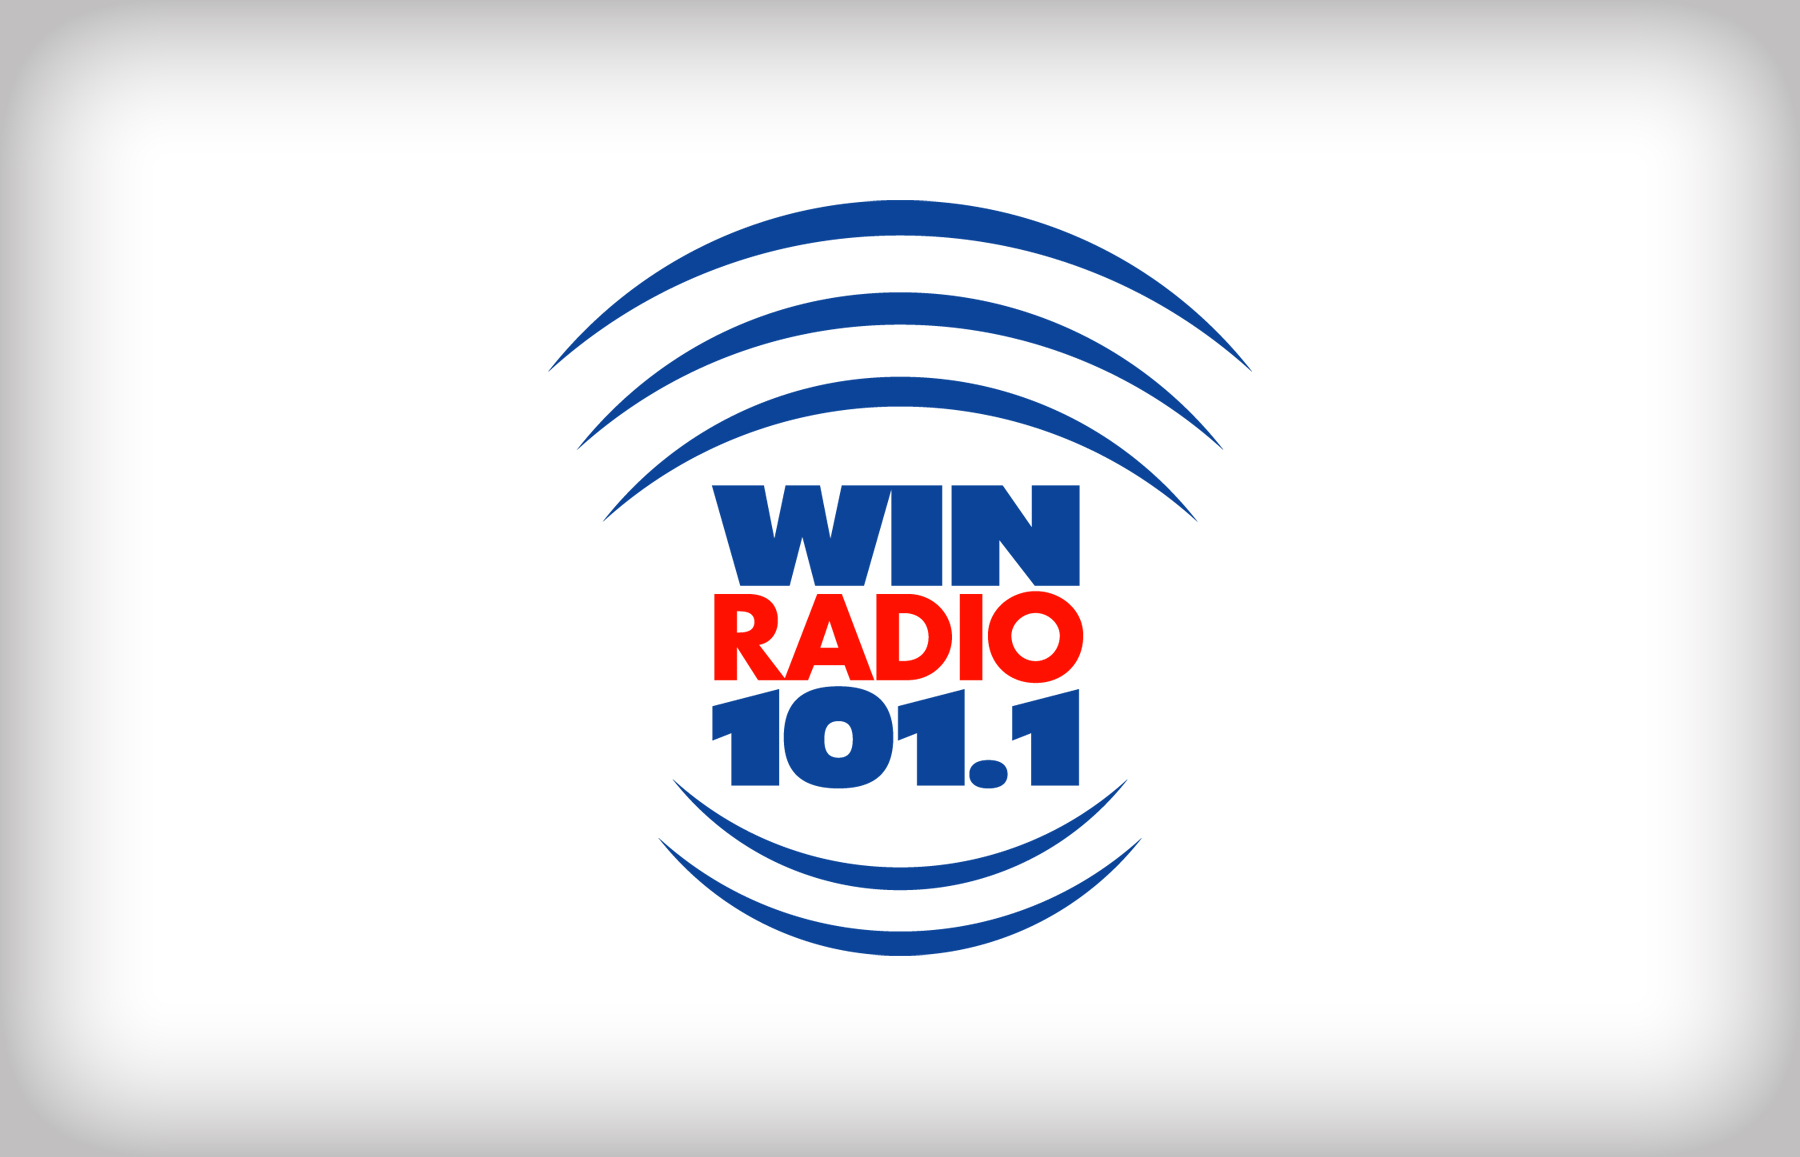 WIN Radio Logo